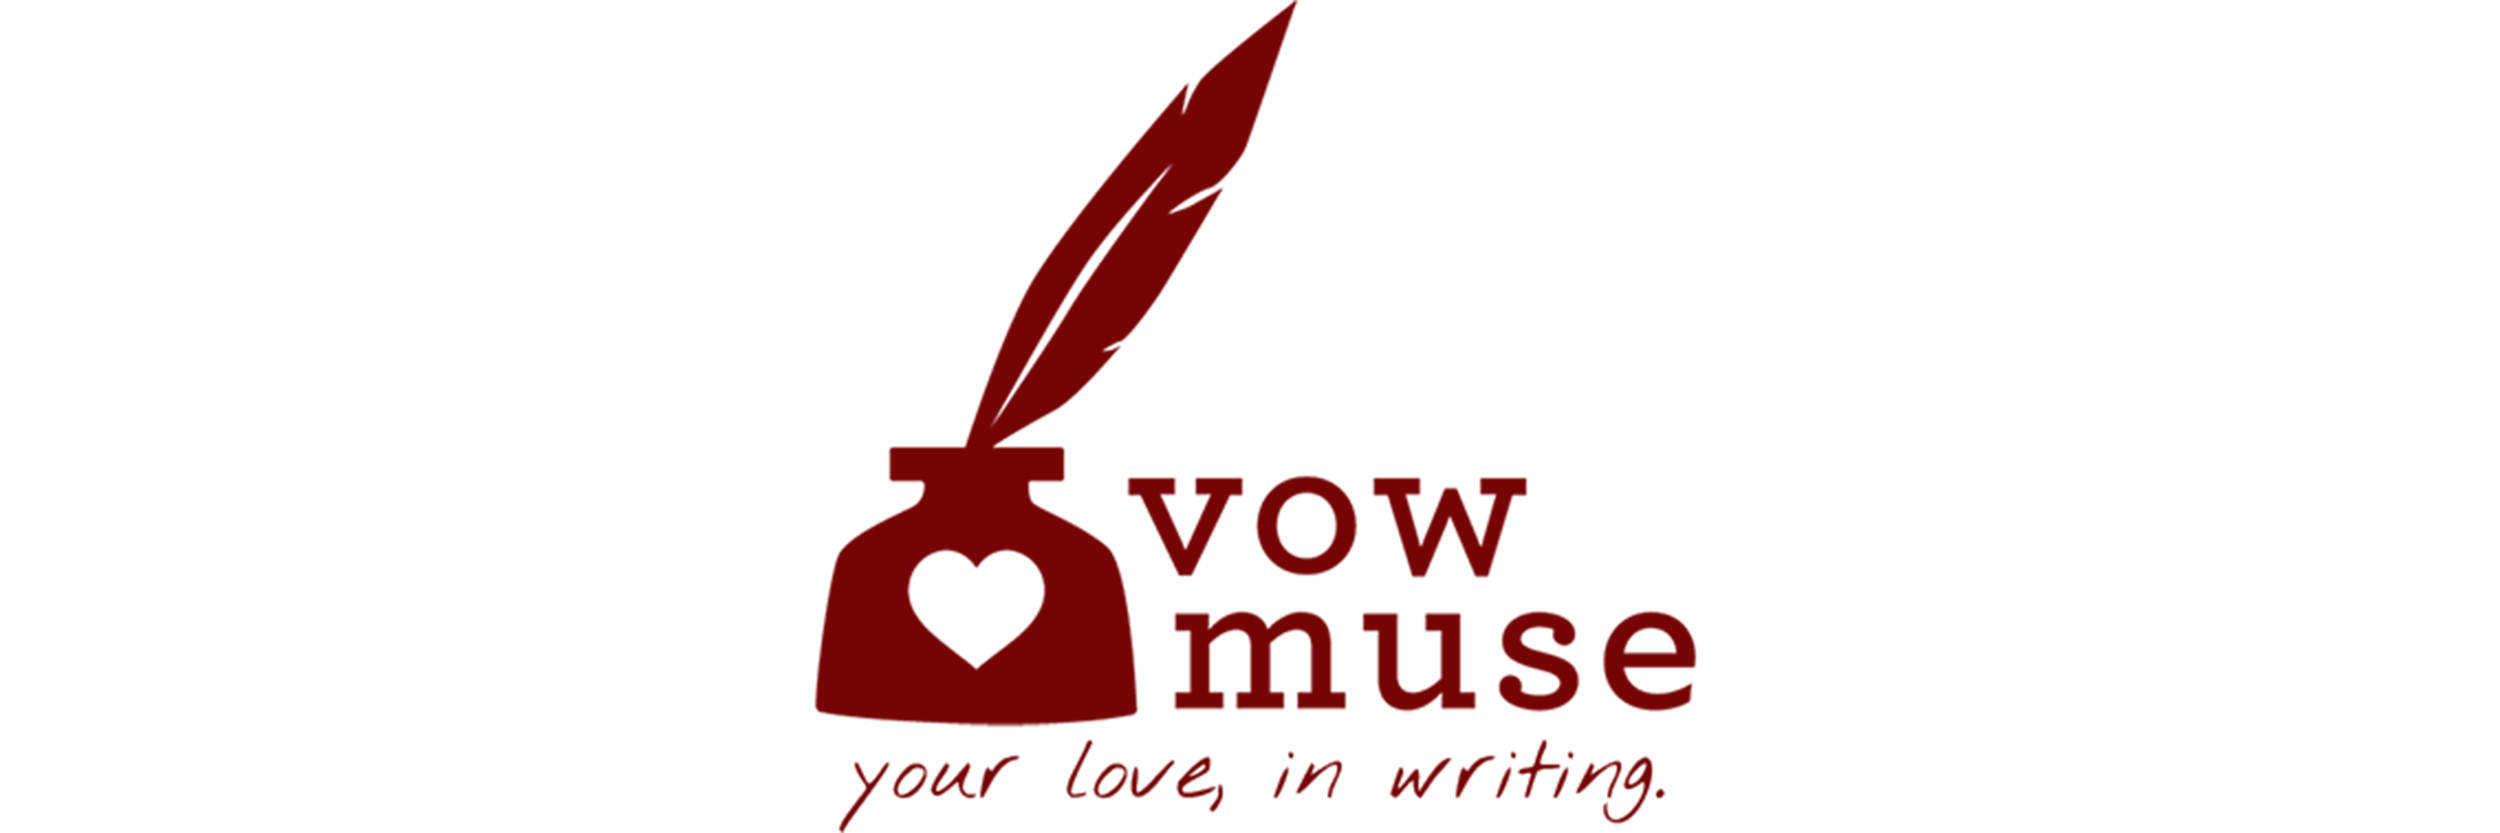 vm-logo-red-crop-final.png